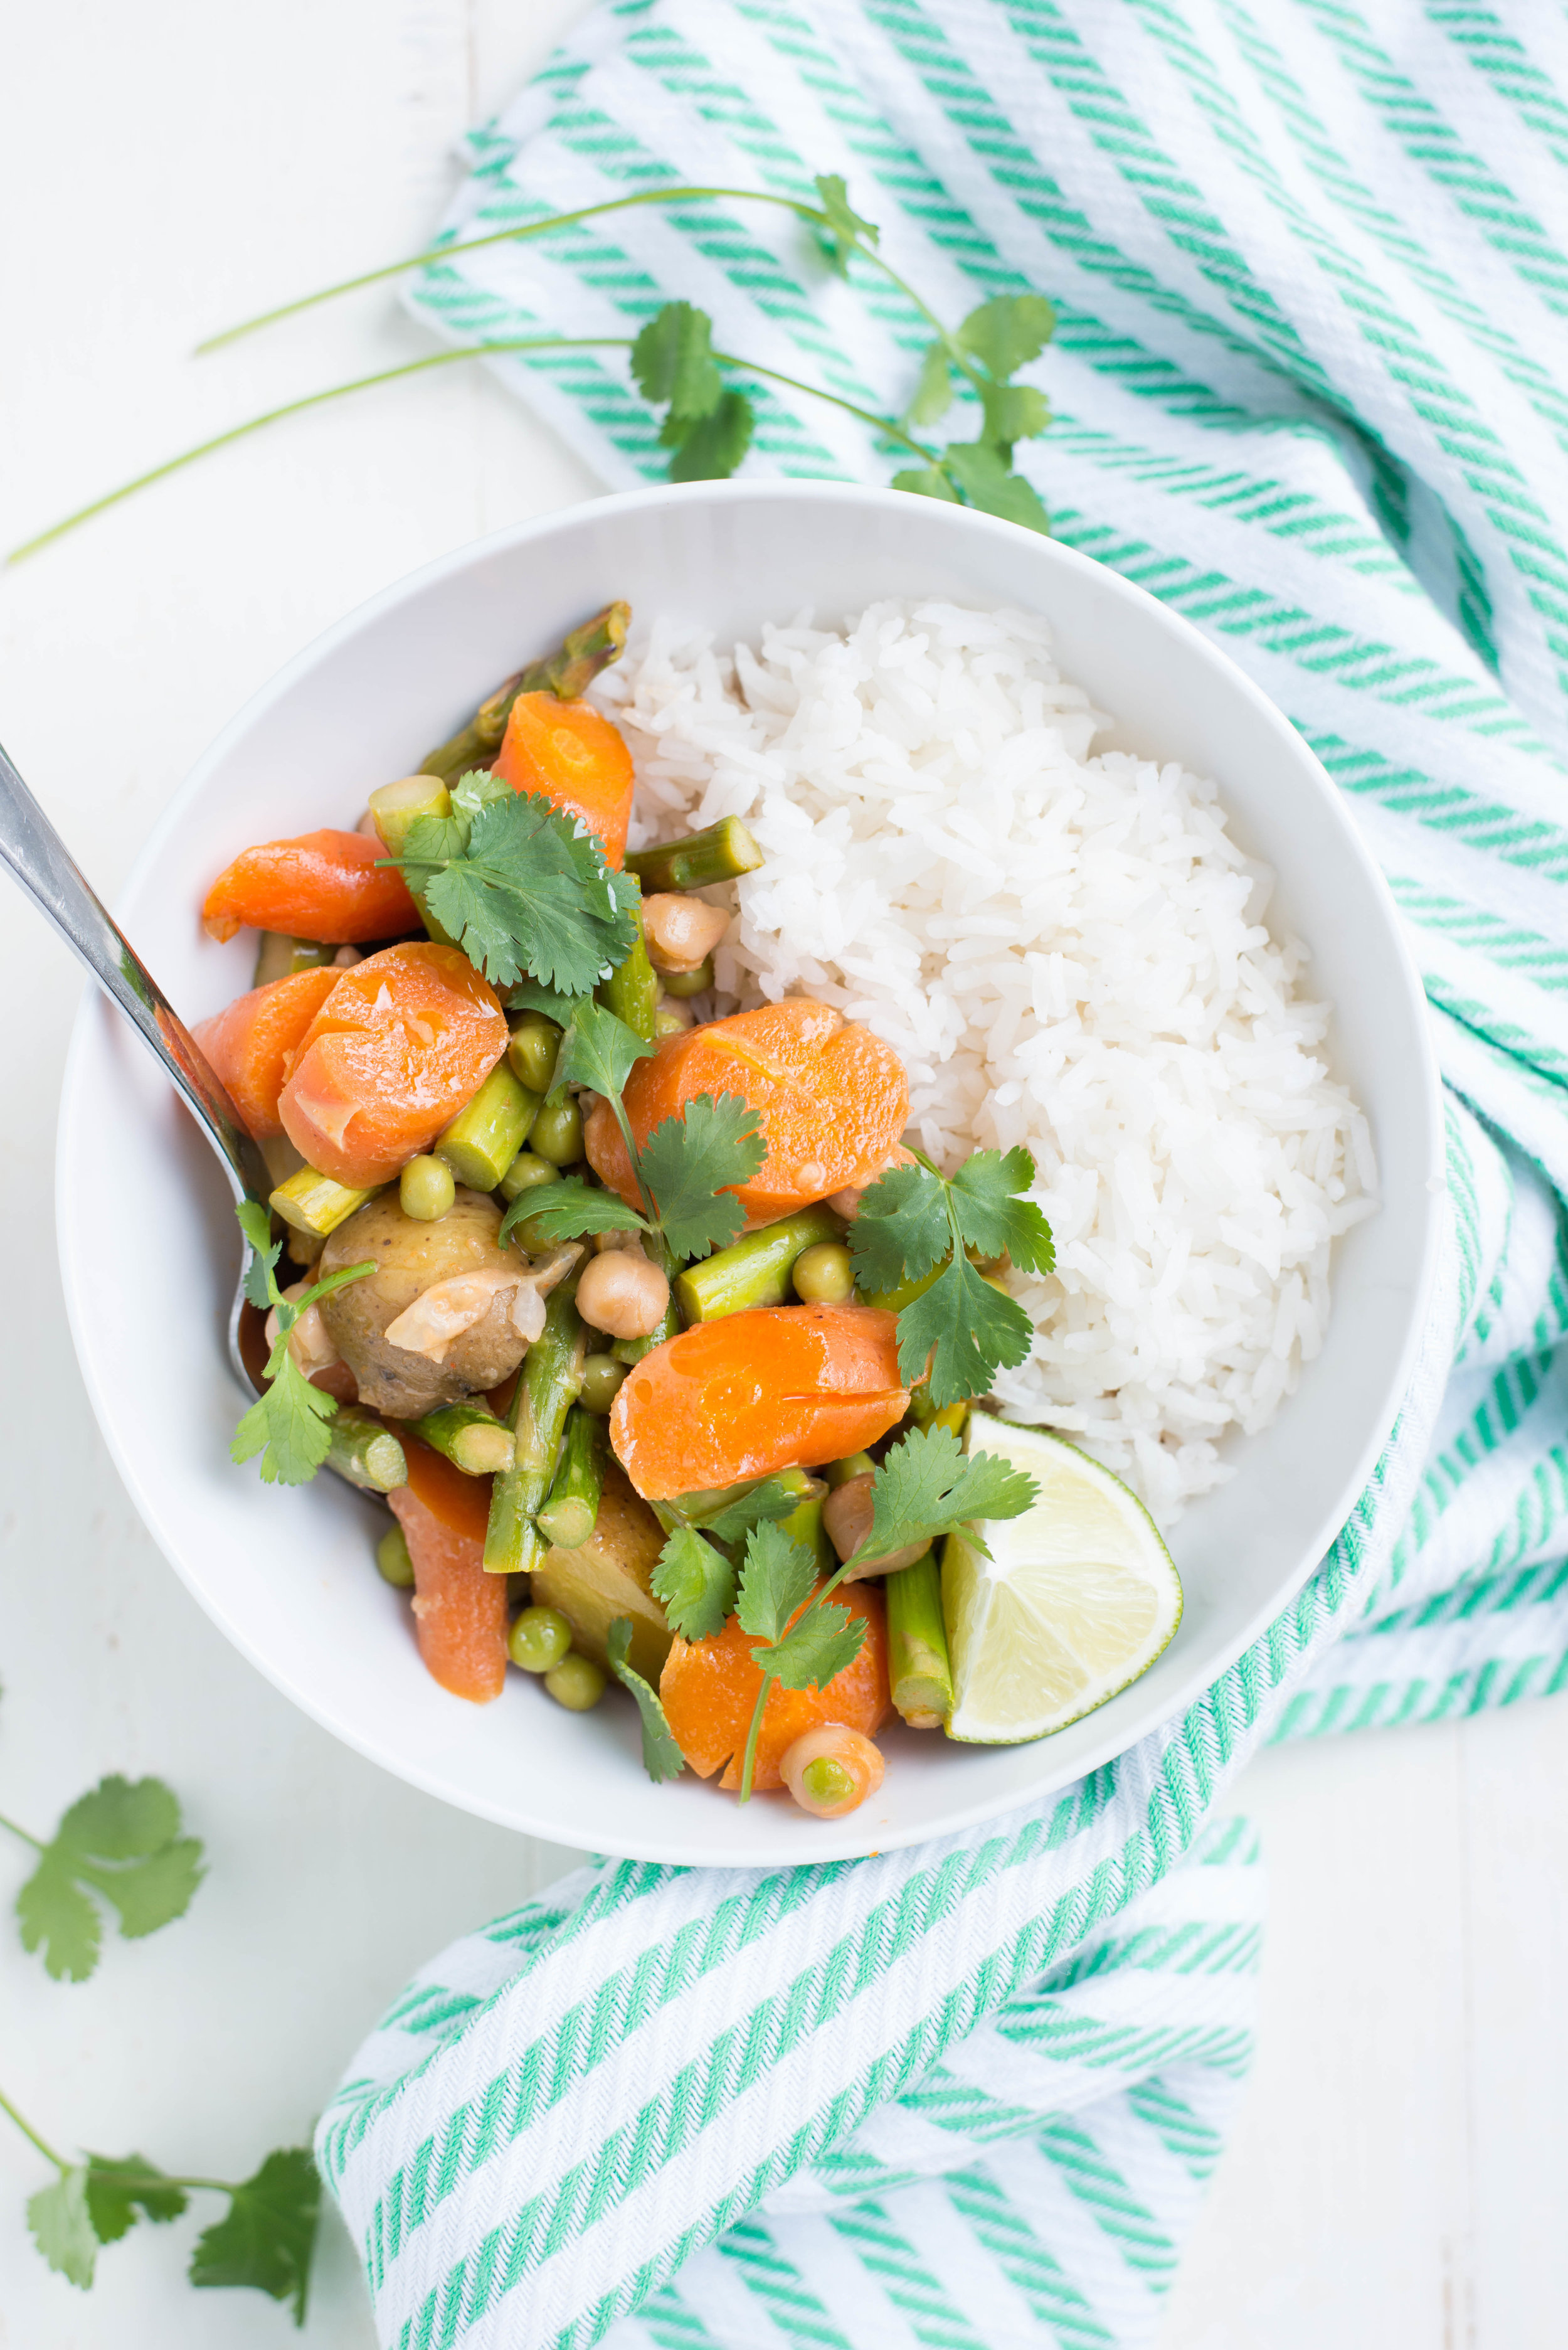 Bursting with vibrant spring vegetables, Slow Cooker Spring Veggie Coconut Curry is easy to pull together and is the perfect dinner, any night of the week.